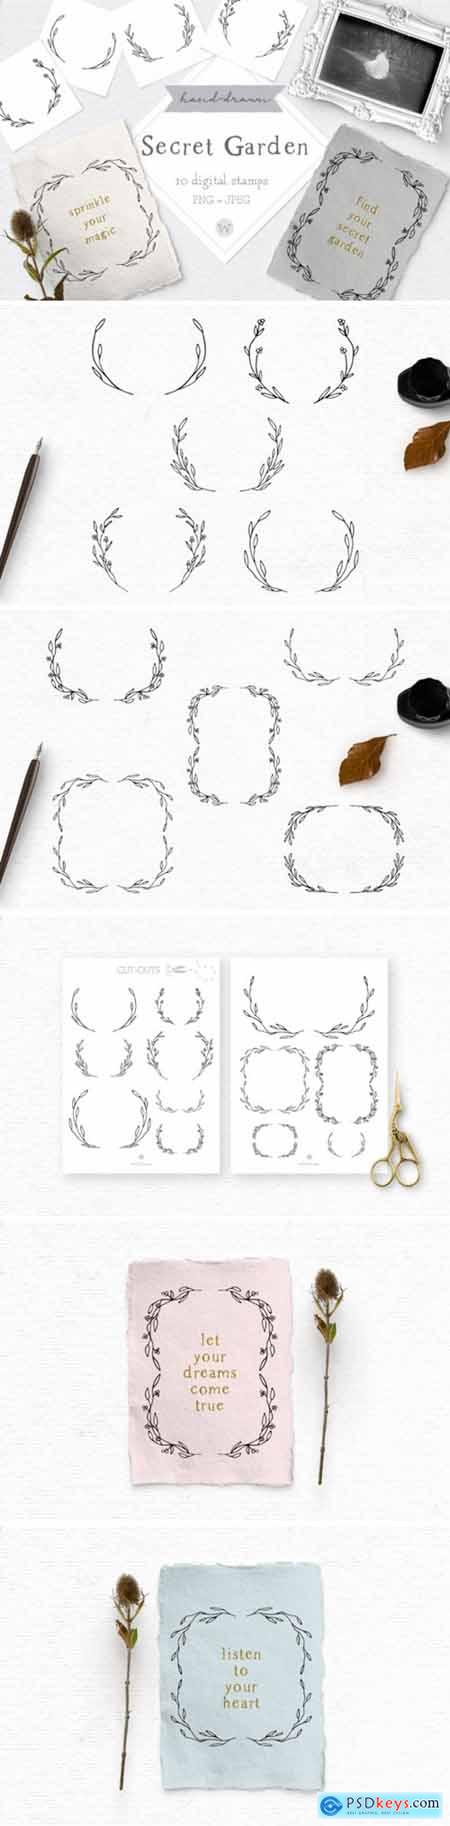 Hand Drawn Doodle Clipart Frames 1712043